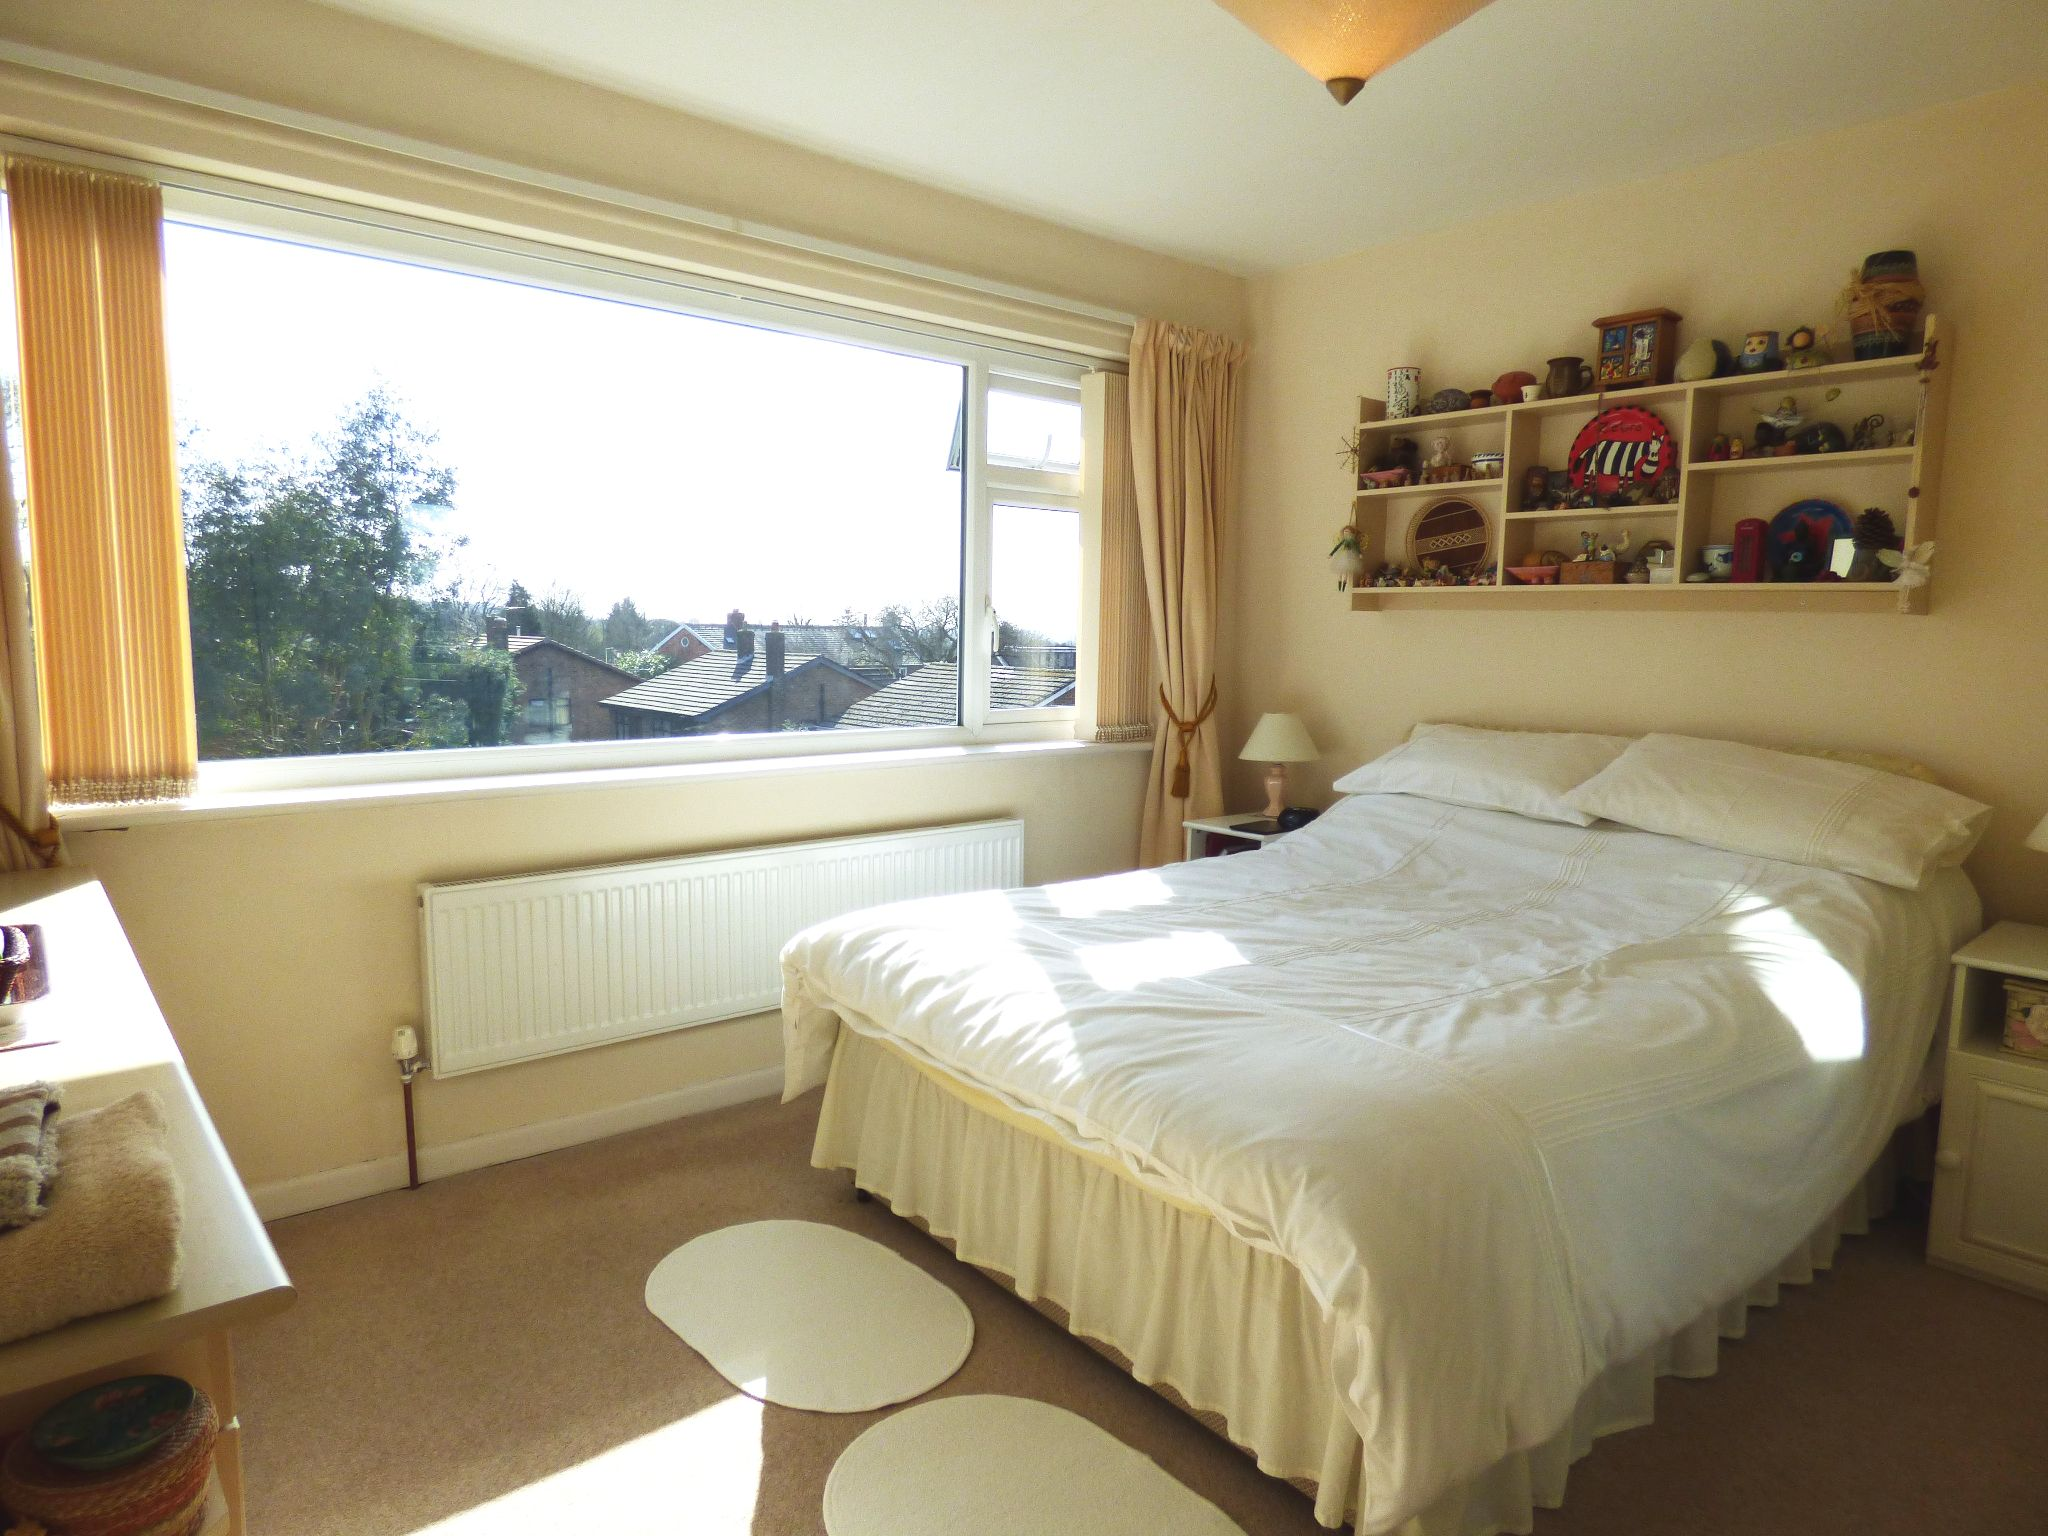 4 Bedroom Detached House For Sale - Bedroom One